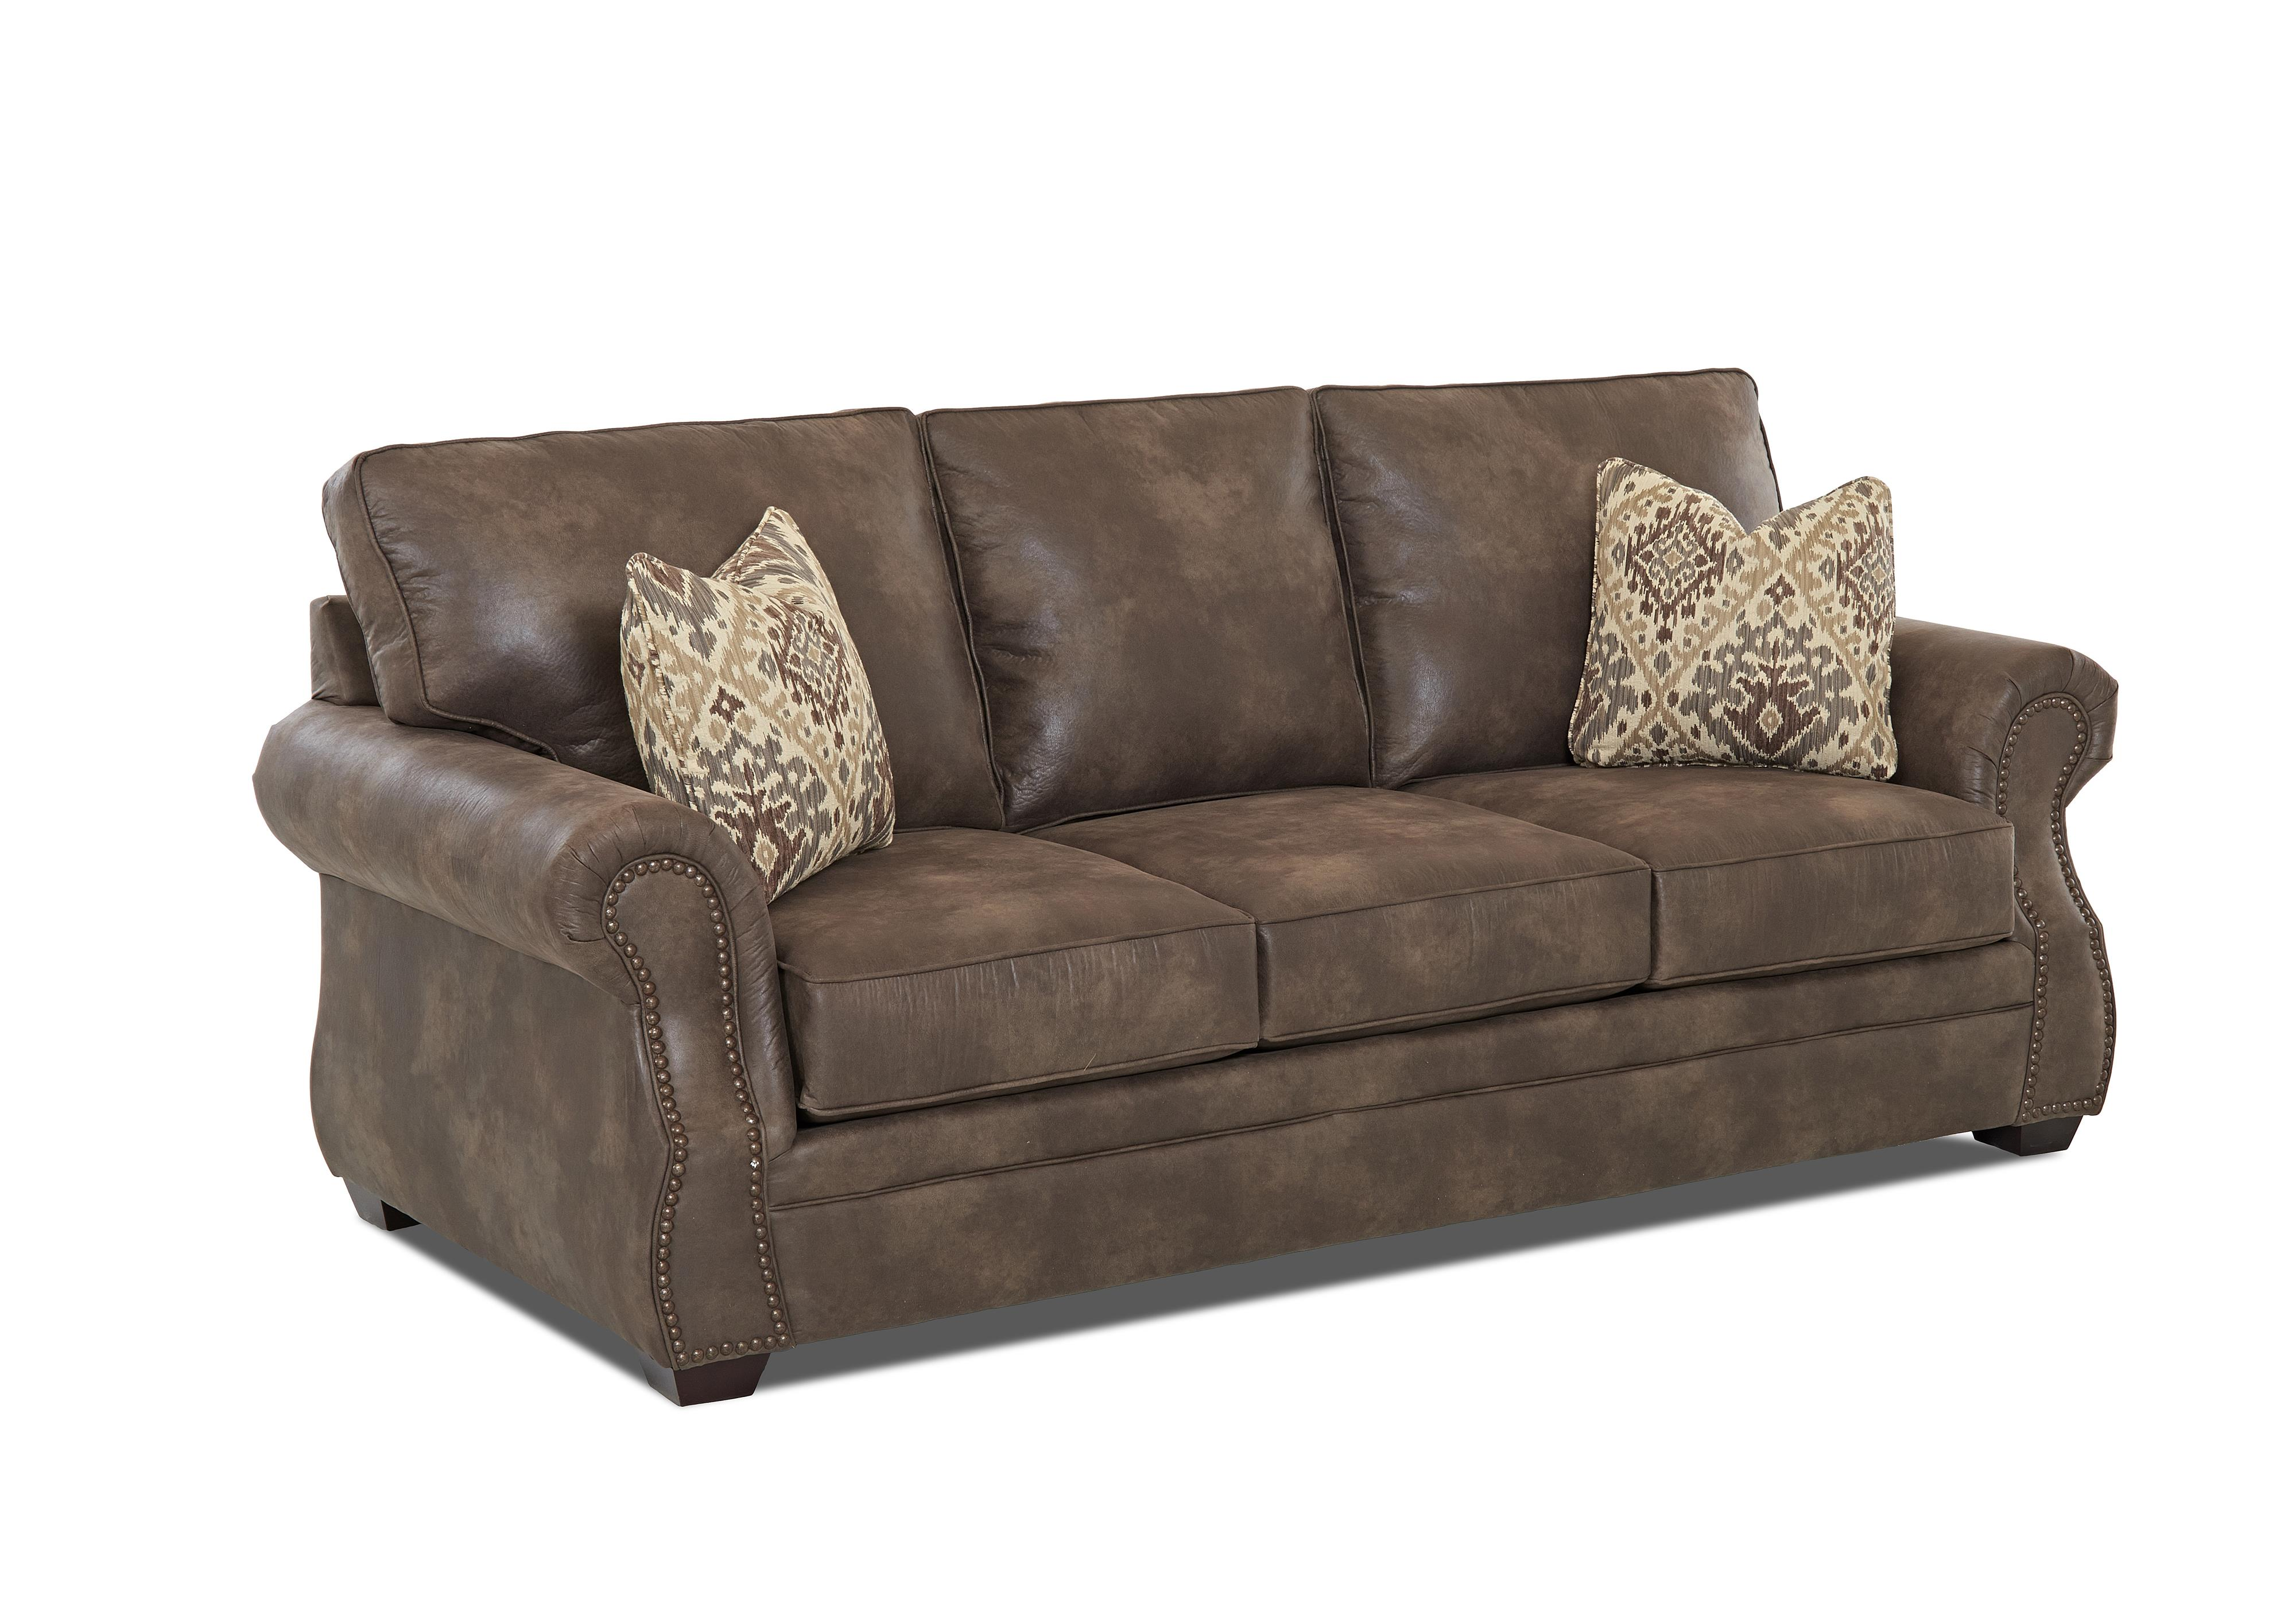 traditional sofa sleeper accent pillows for black leather klaussner jasper queen inner spring